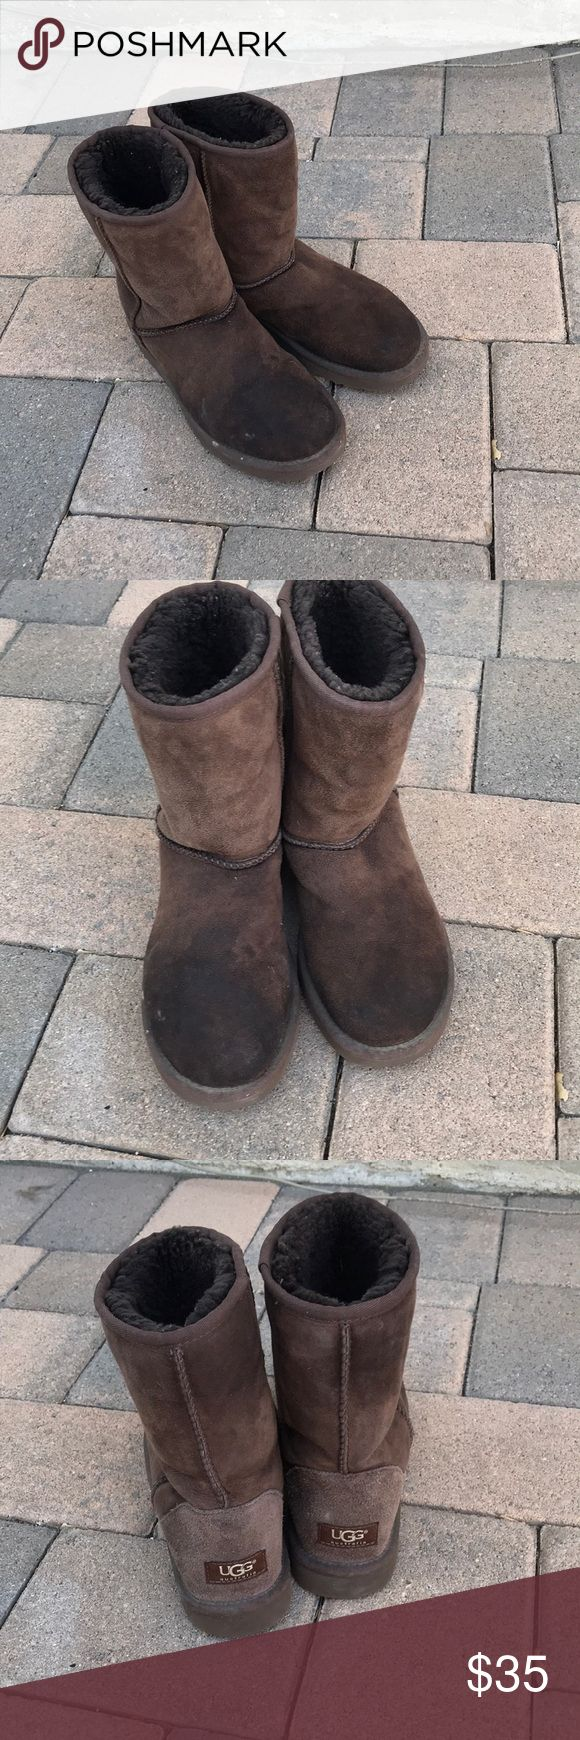 UGG Short Boots (110) Signs of wear, scuff marks on the shoe, fur a little worn, some lint in the shoe, stains on the shoe (see picture), discoloration from wear, no holes or tears. See pictures for accurate description UGG Shoes Winter & Rain Boots